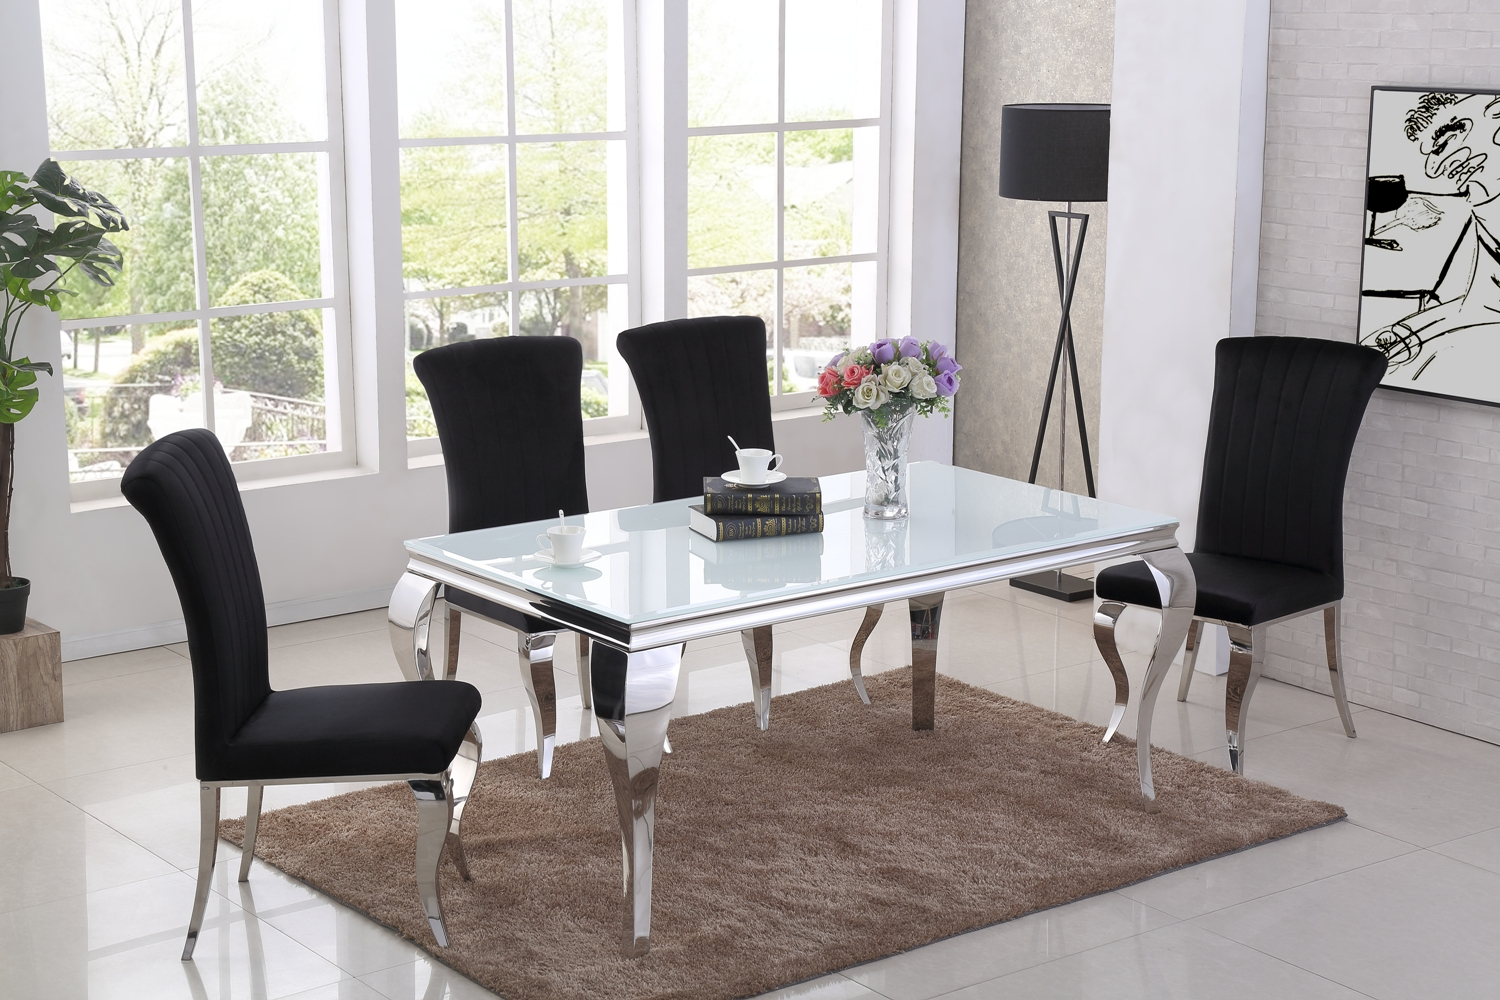 Liyana White Dining Table DT-840WH & Liyana Black Chair CH-891BL